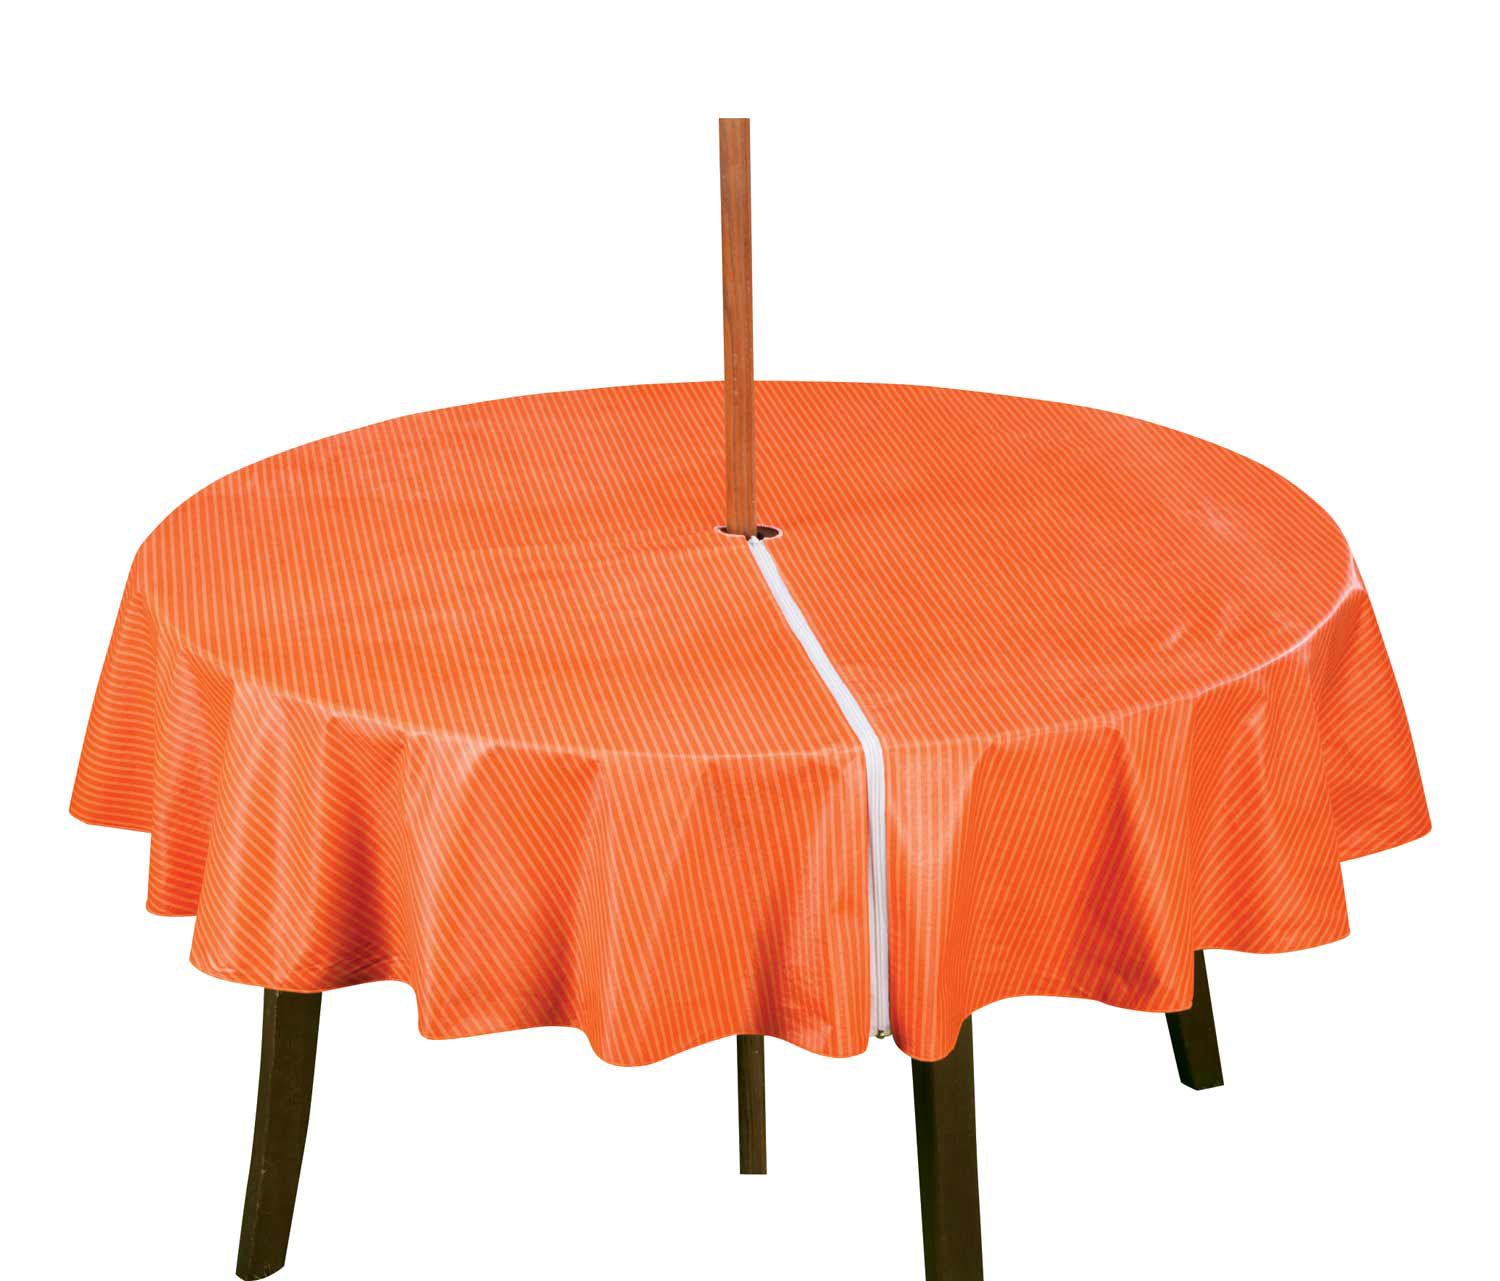 Patio Table Cover With Zipper Stripe Design by Miles Kimball